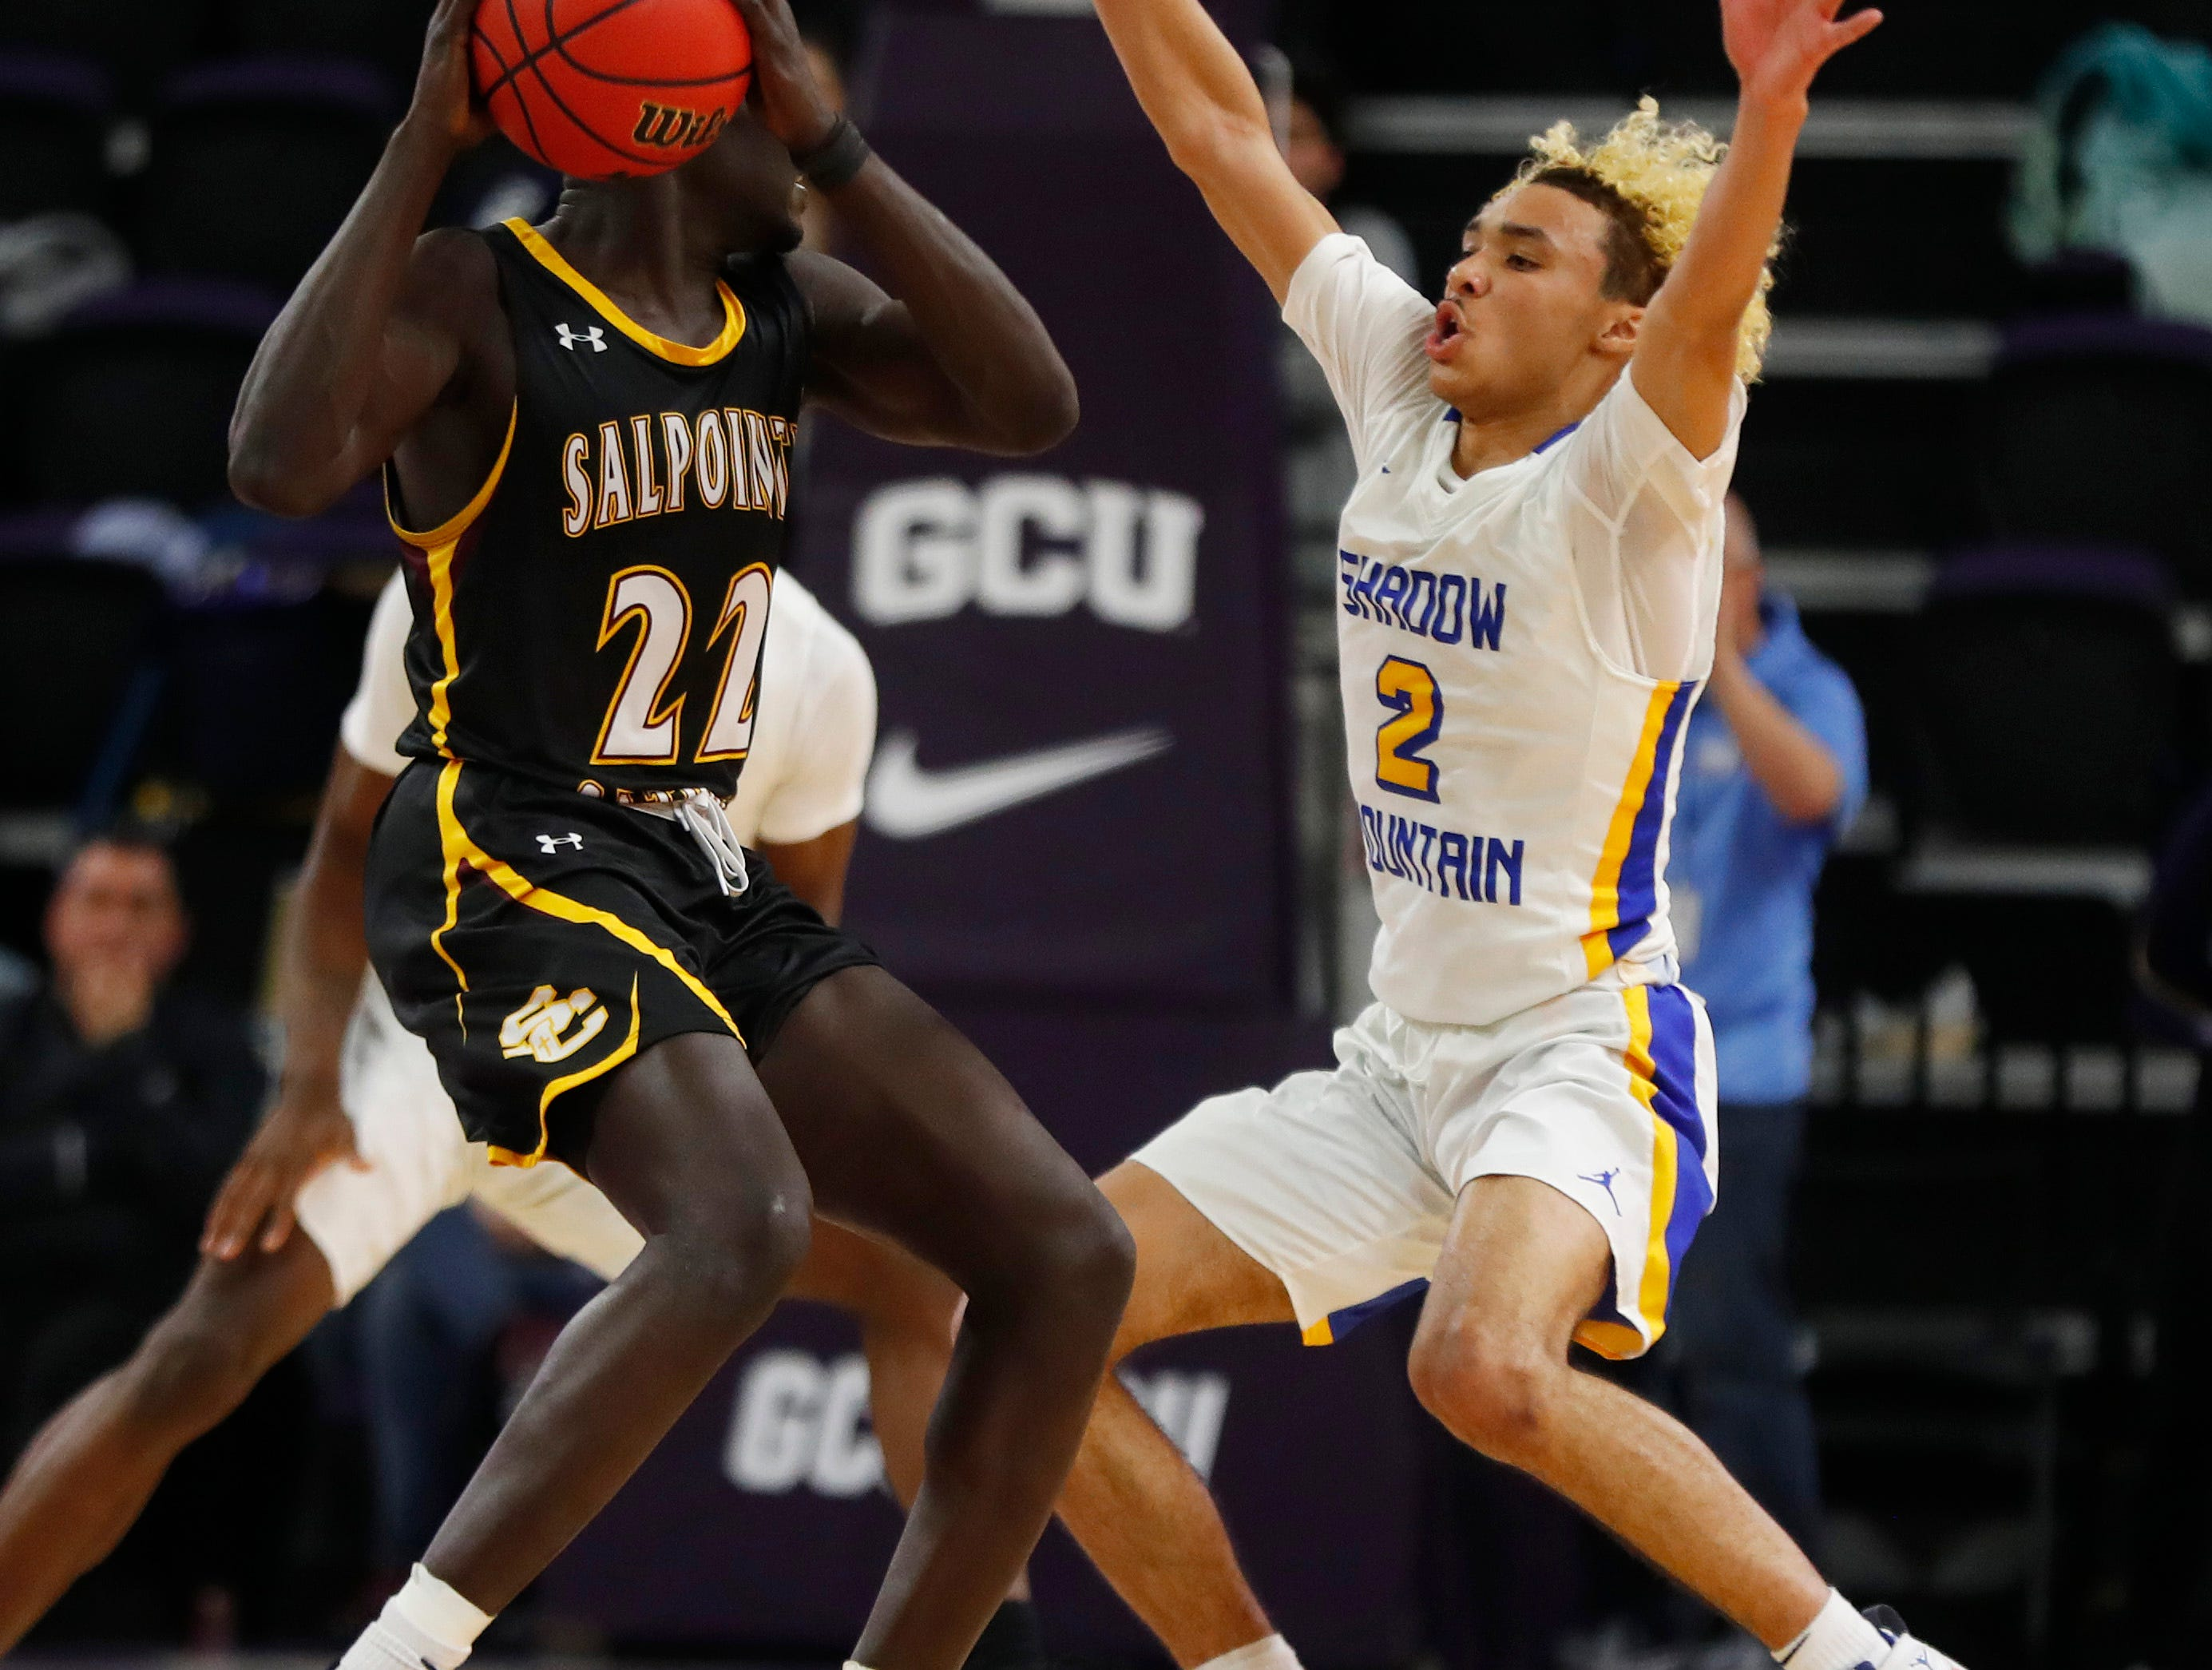 Salpointe Catholic's Majok Deng (22) travels under defensive pressure from Shadow Mountain's Jaelen House (2) during first half of the 4A boys basketball semifinal game at Grand Canyon University Arena in Phoenix, Ariz. on February 22, 2019.